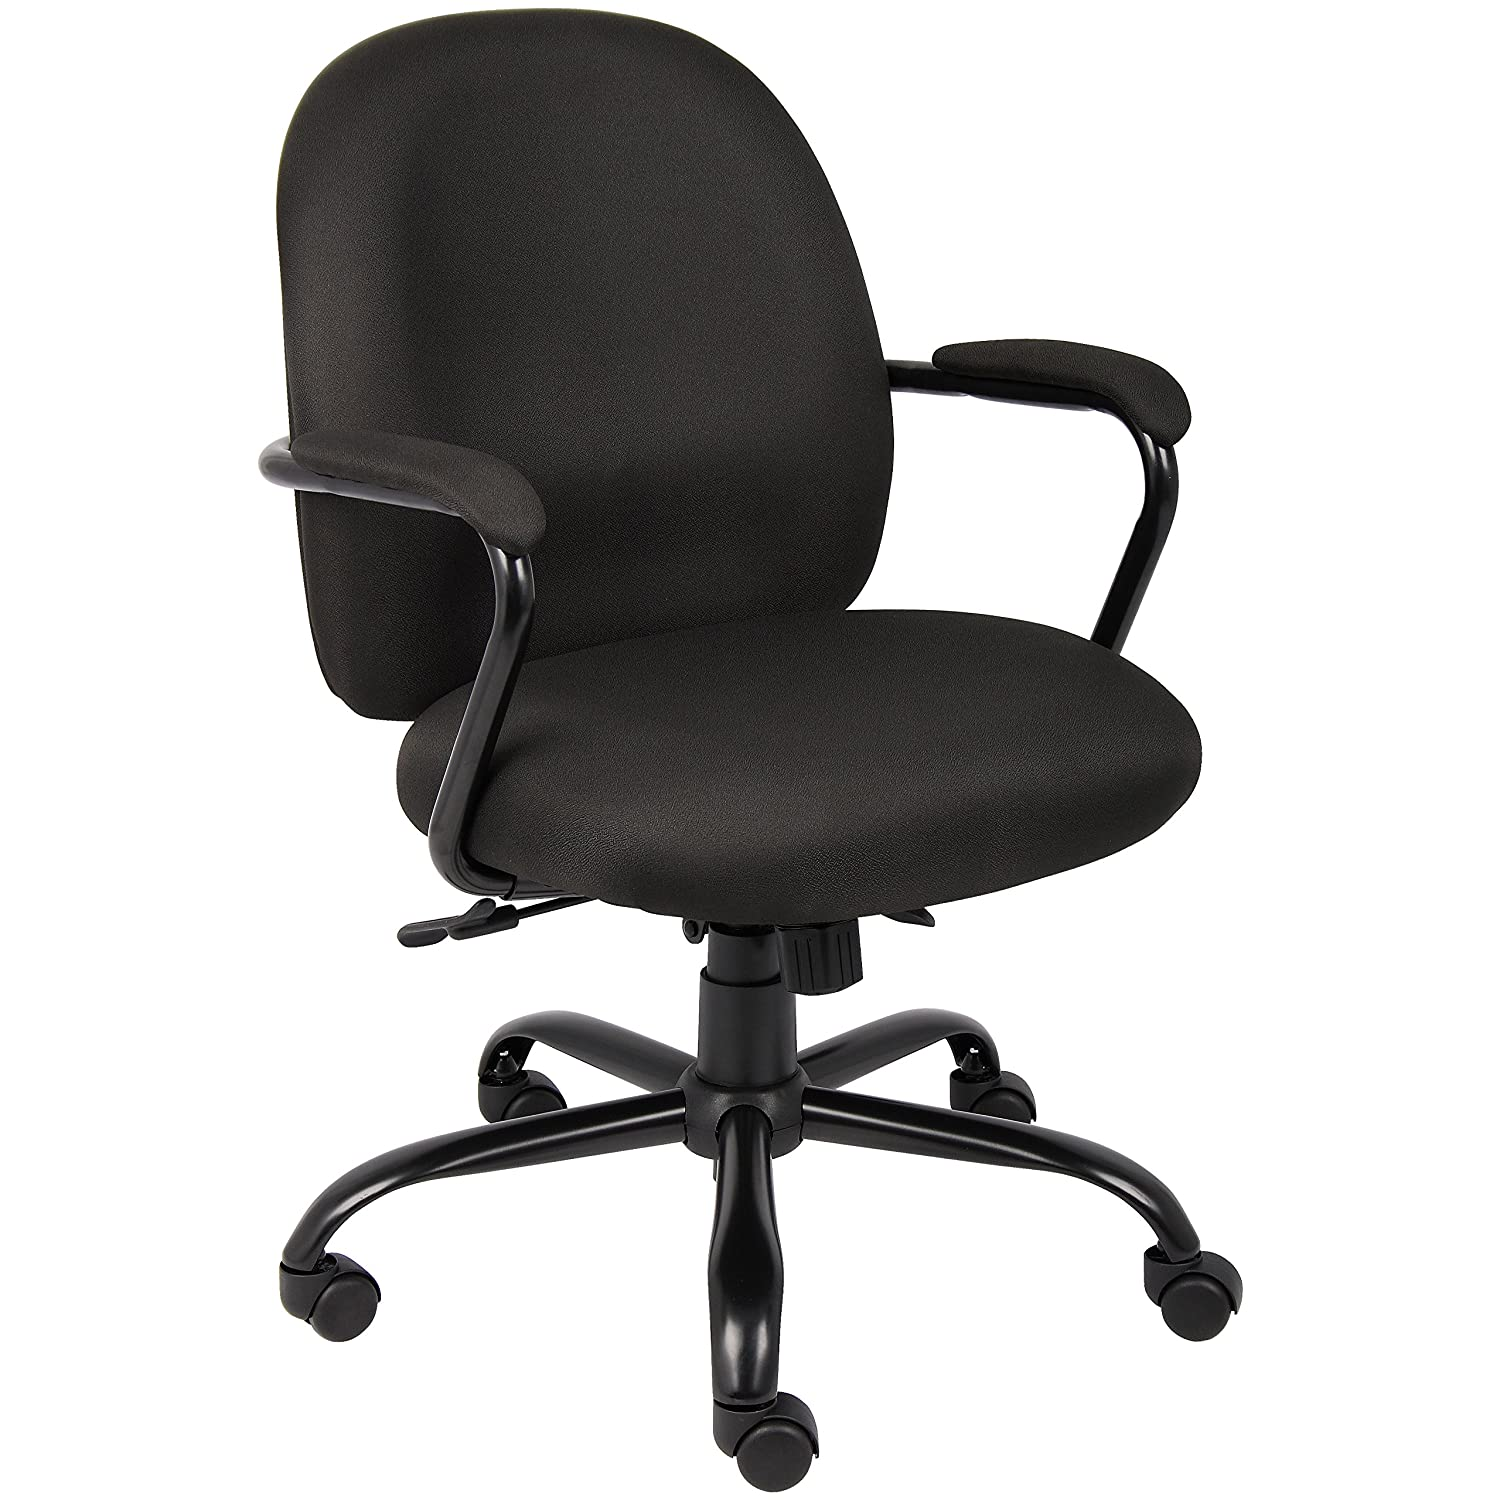 Amazon Boss fice Products B670 BK Heavy Duty Task Chair in